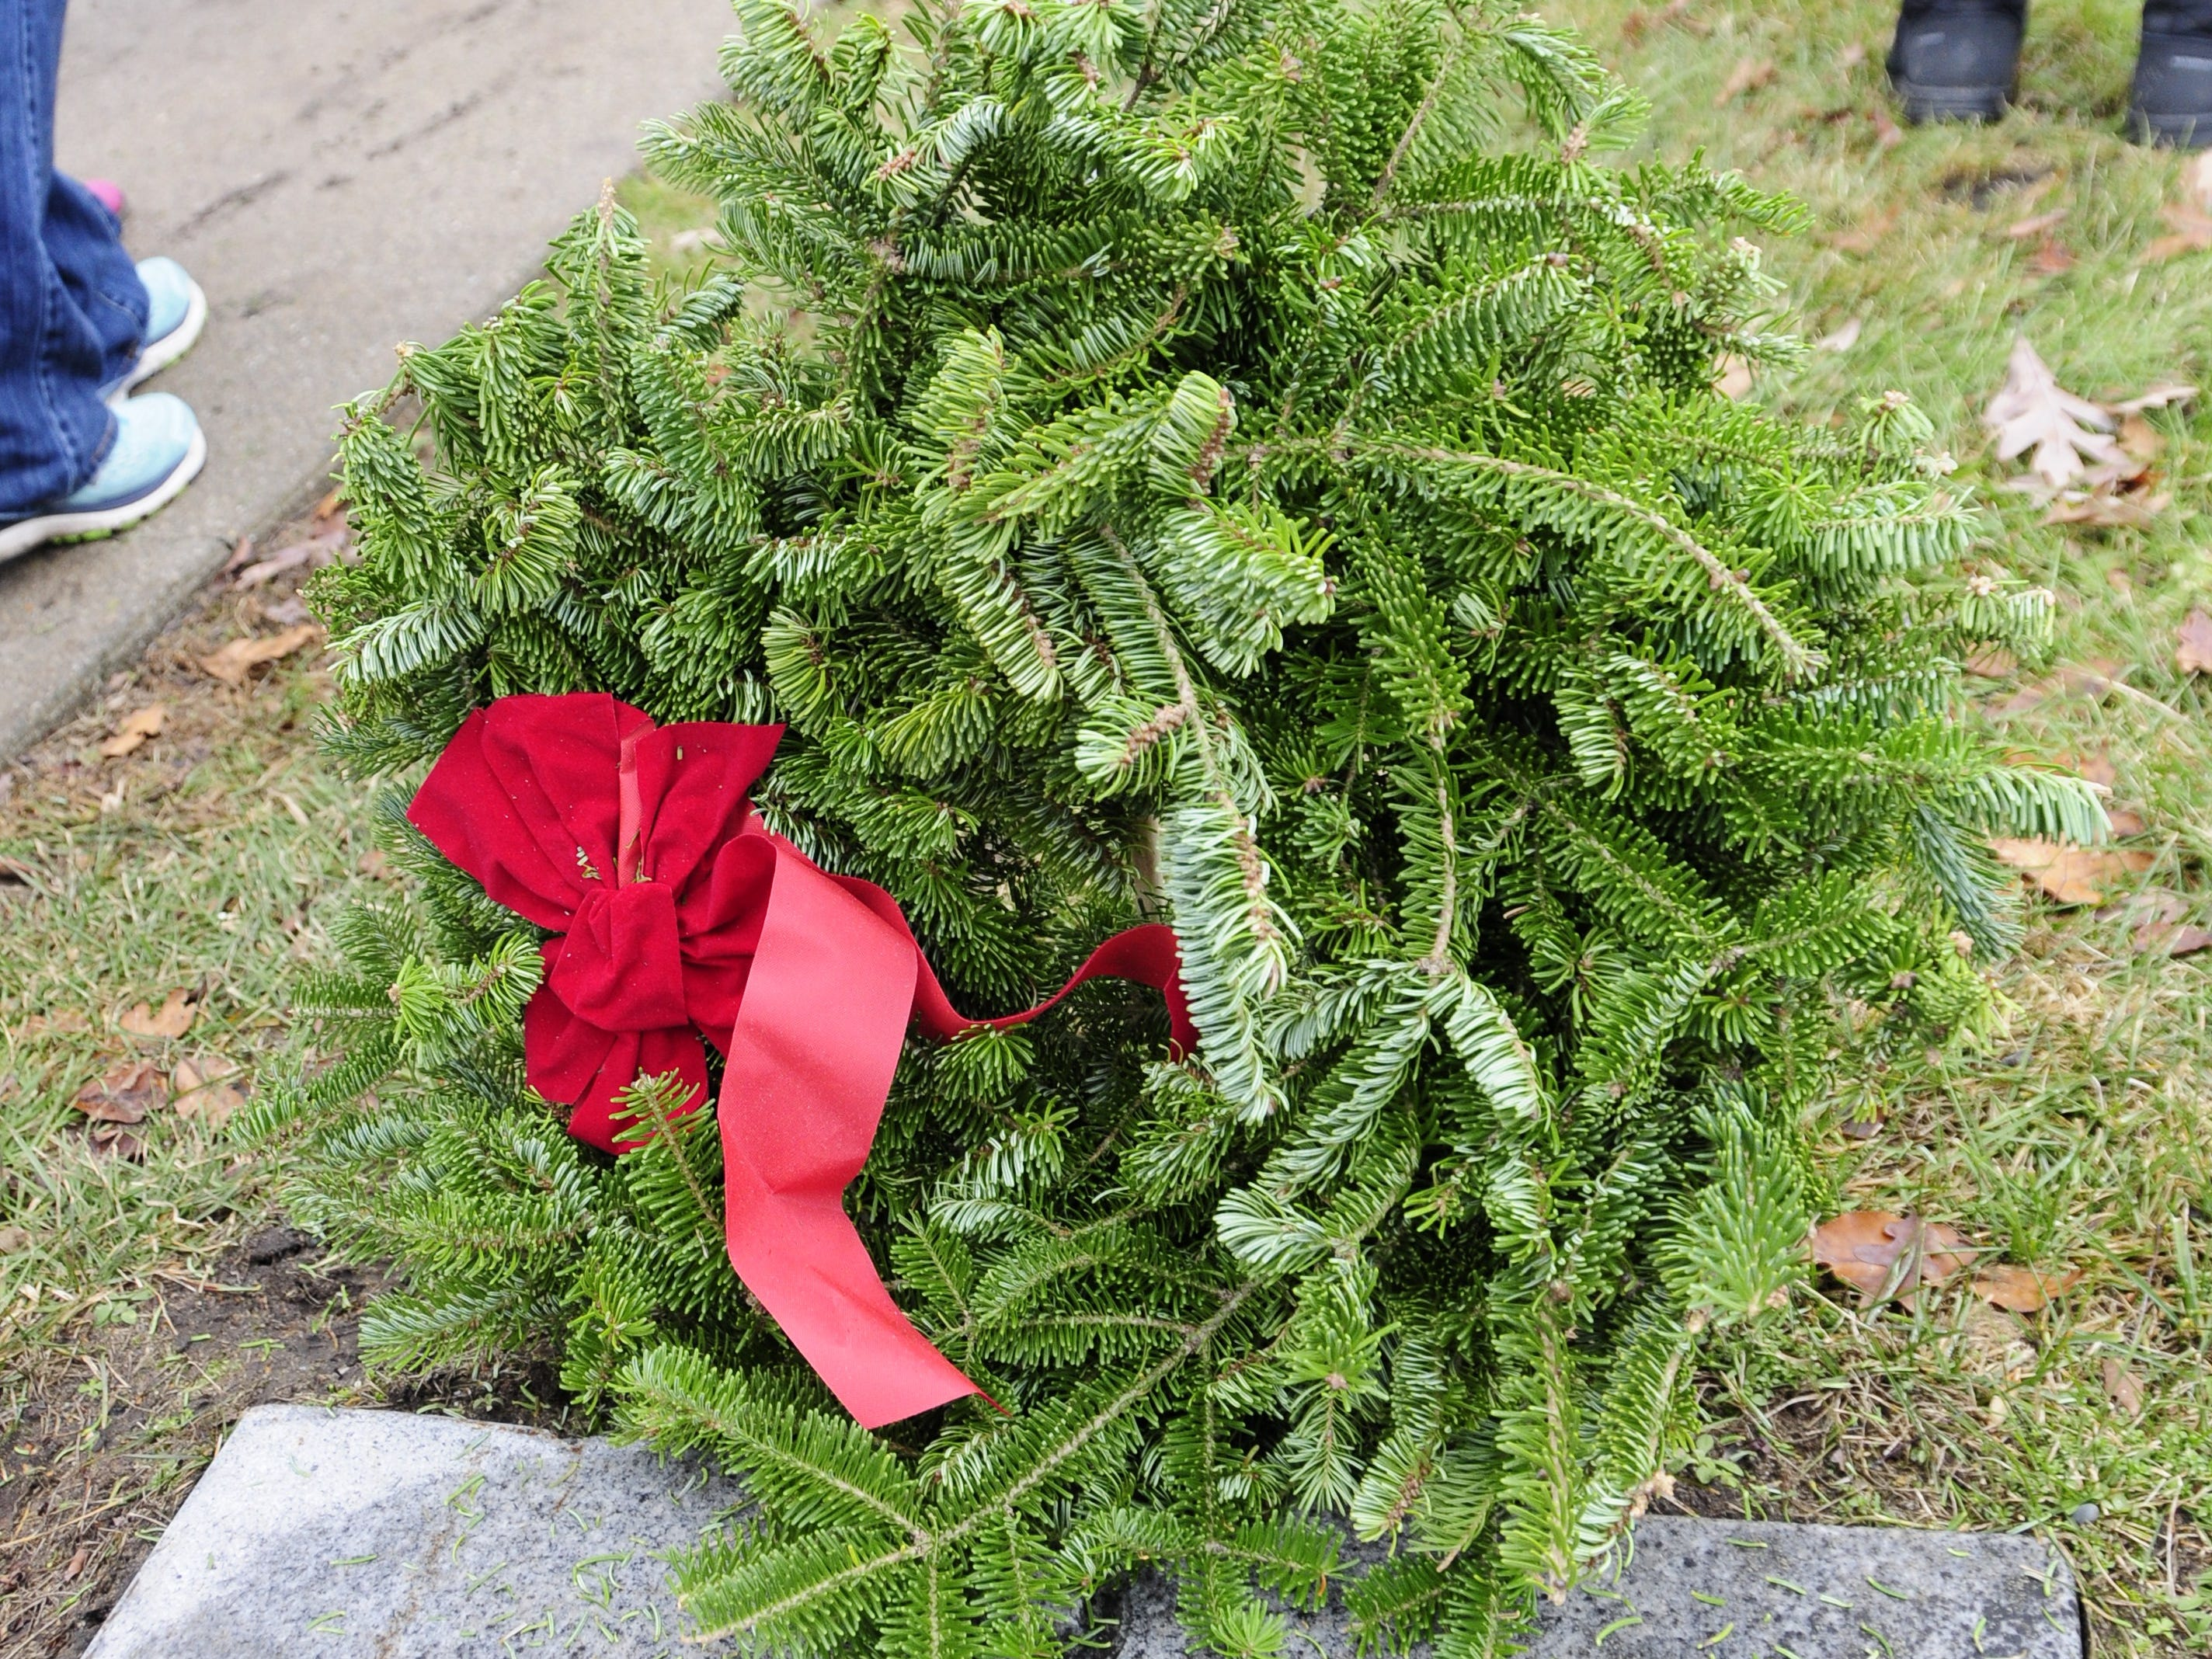 A wreaths marks a grave during Wreaths Across America on Saturday, Dec. 15, 2018 at St. Clair County Allied Veterans Cemetery in Port Huron.